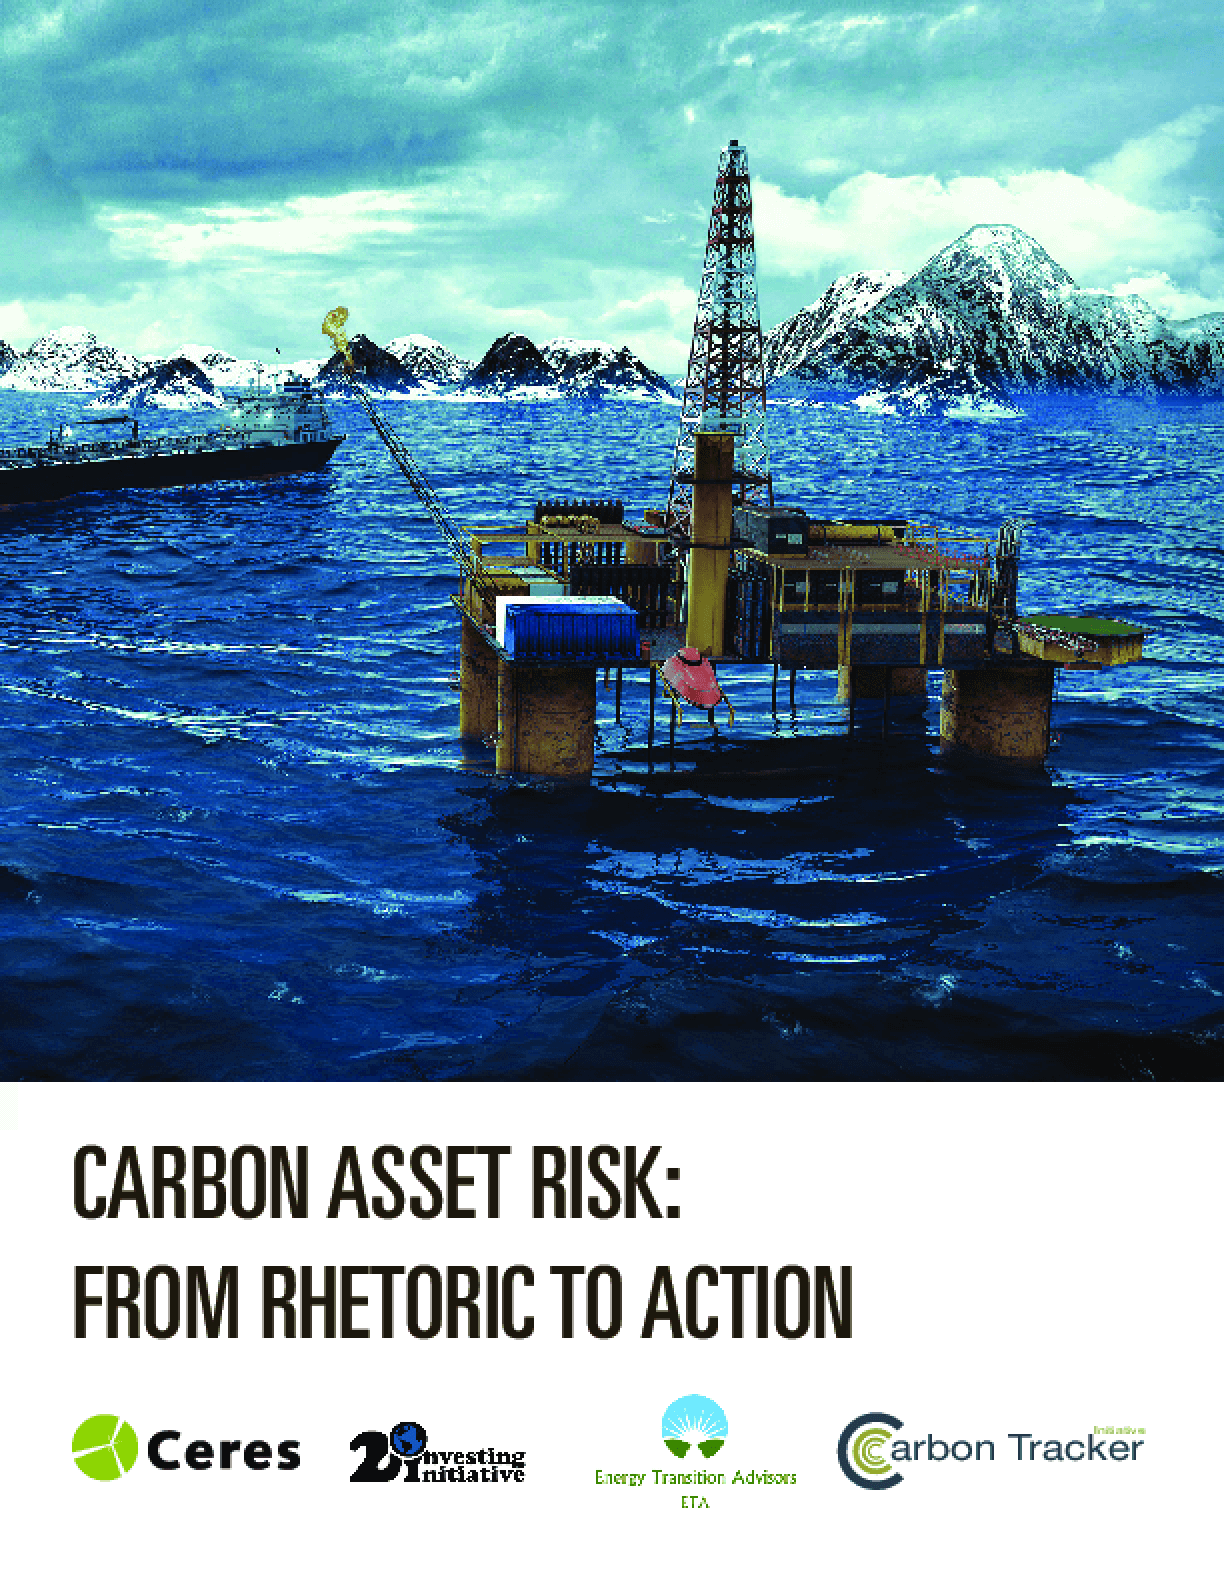 Carbon Asset Risk: From Rhetoric To Action